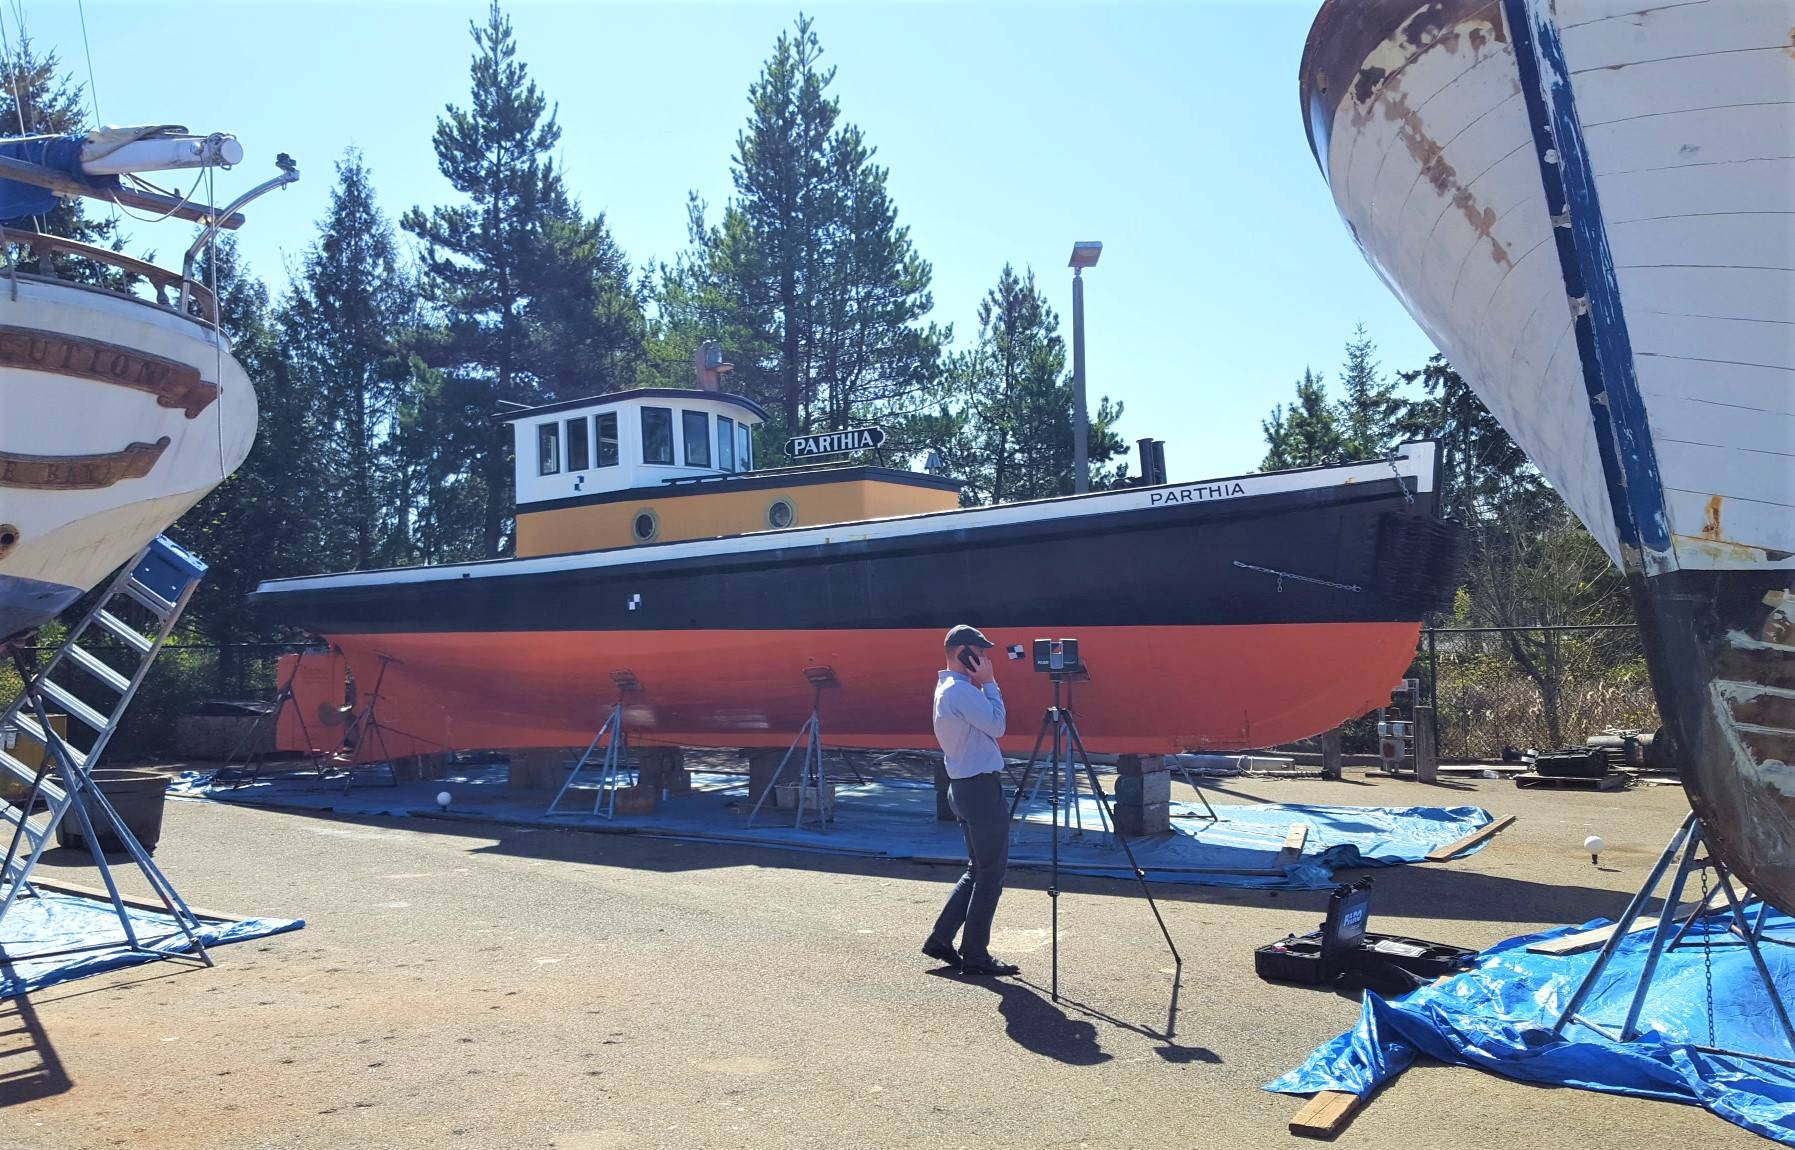 114-year-old surviving wooden tug being restored